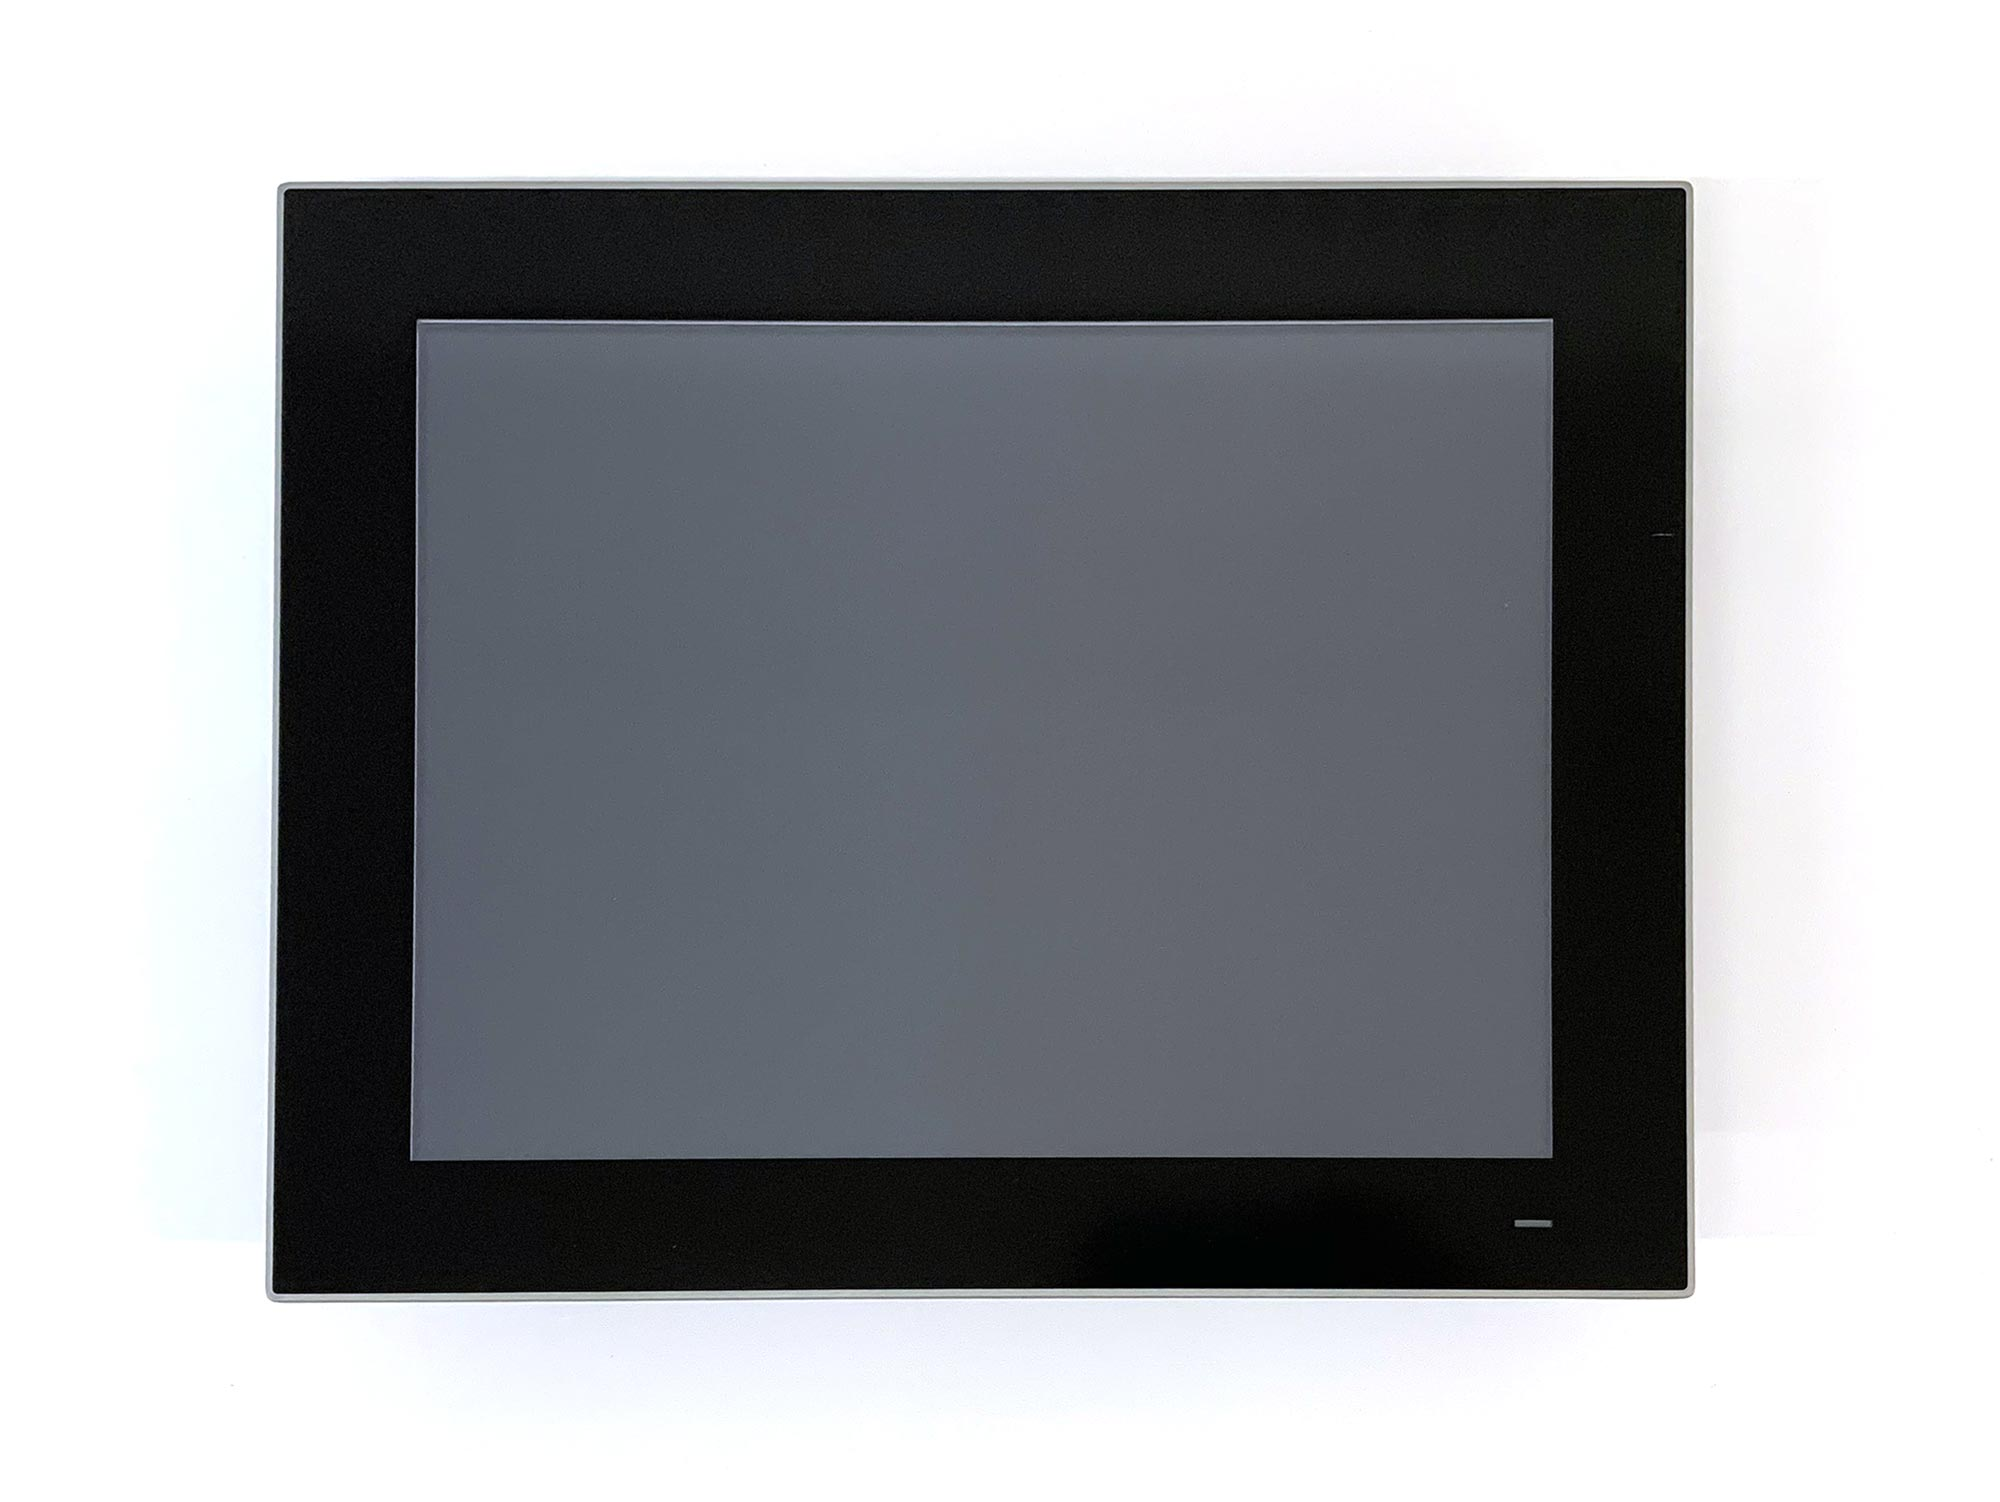 TPC-1551T - Touch-Panel PC mit 15-Zoll Display